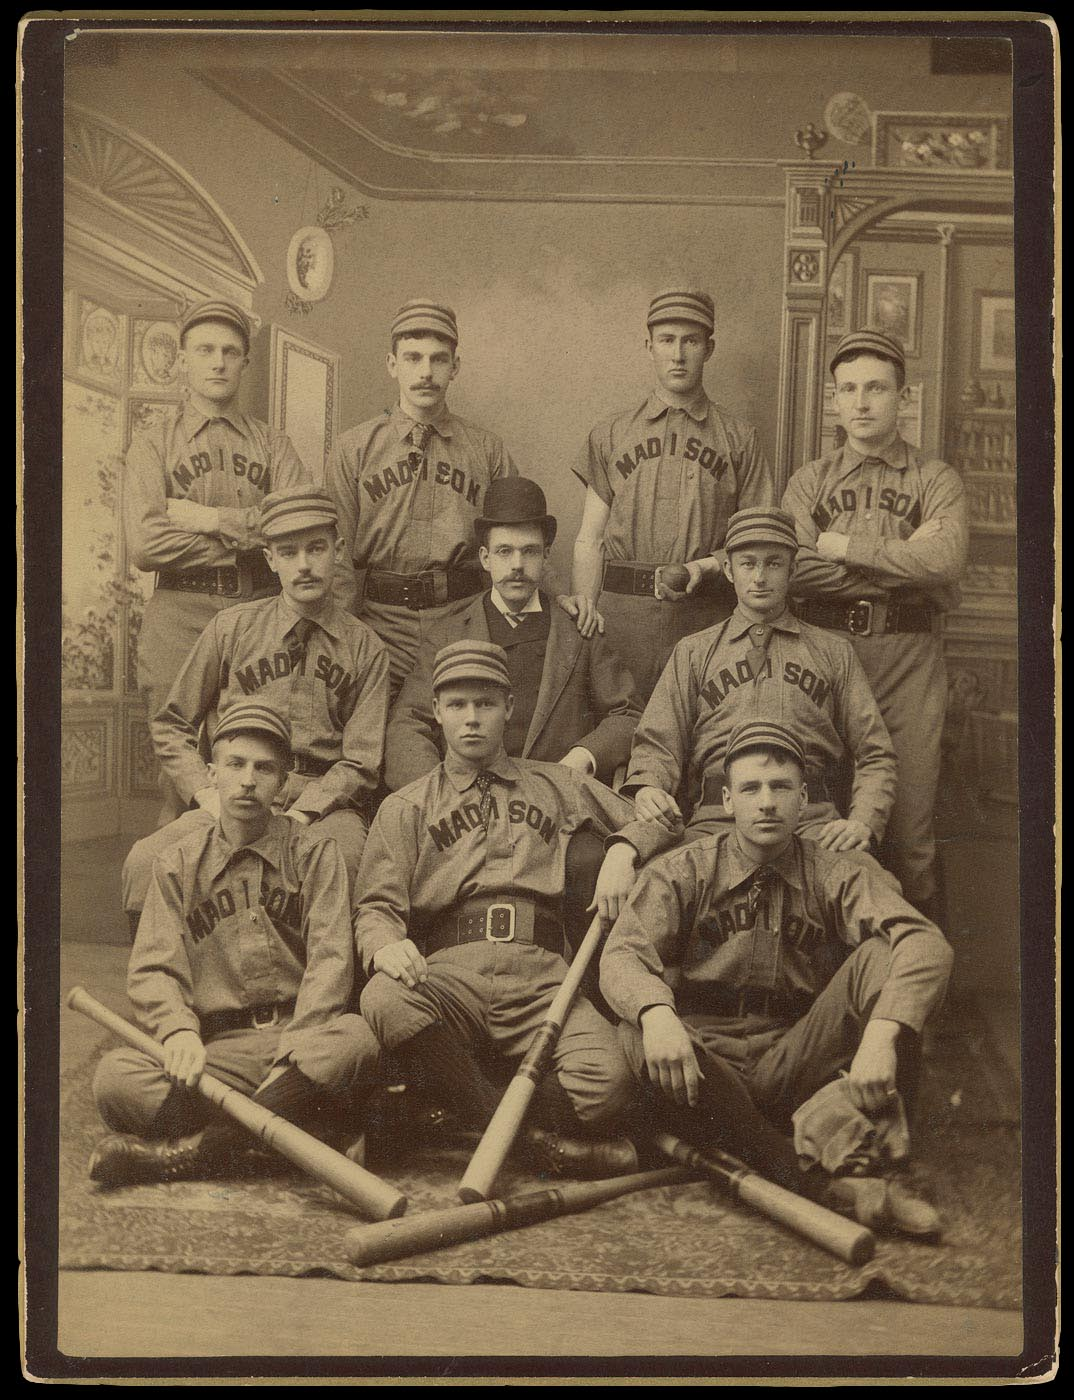 Archival image of students in baseball uniforms